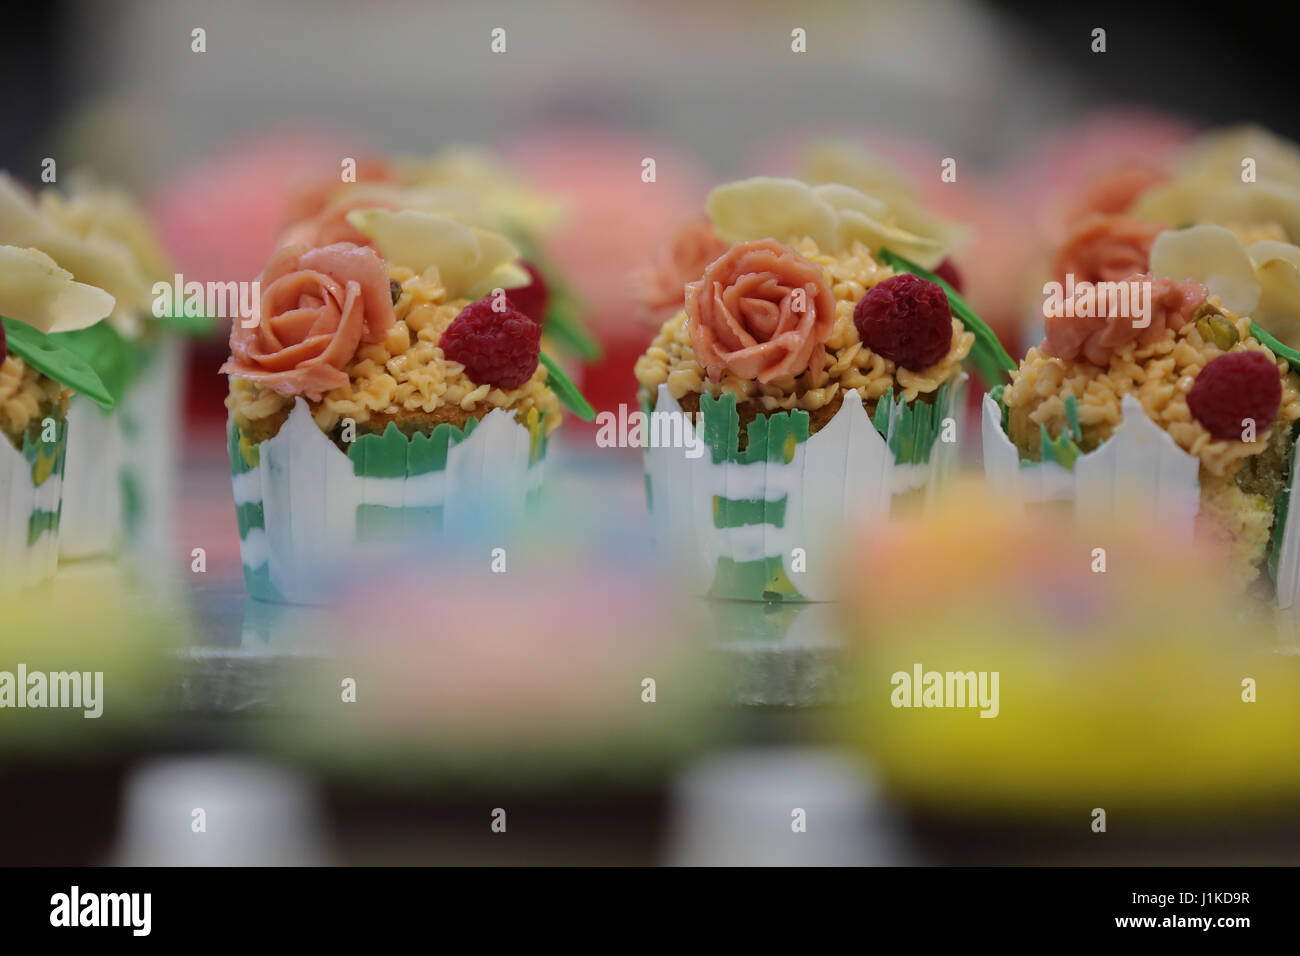 Alexander Palace. London, UK. 22nd Apr, 2017. Cupcakes. Cake International 2017, the Cake Decorating and Baking Stock Photo